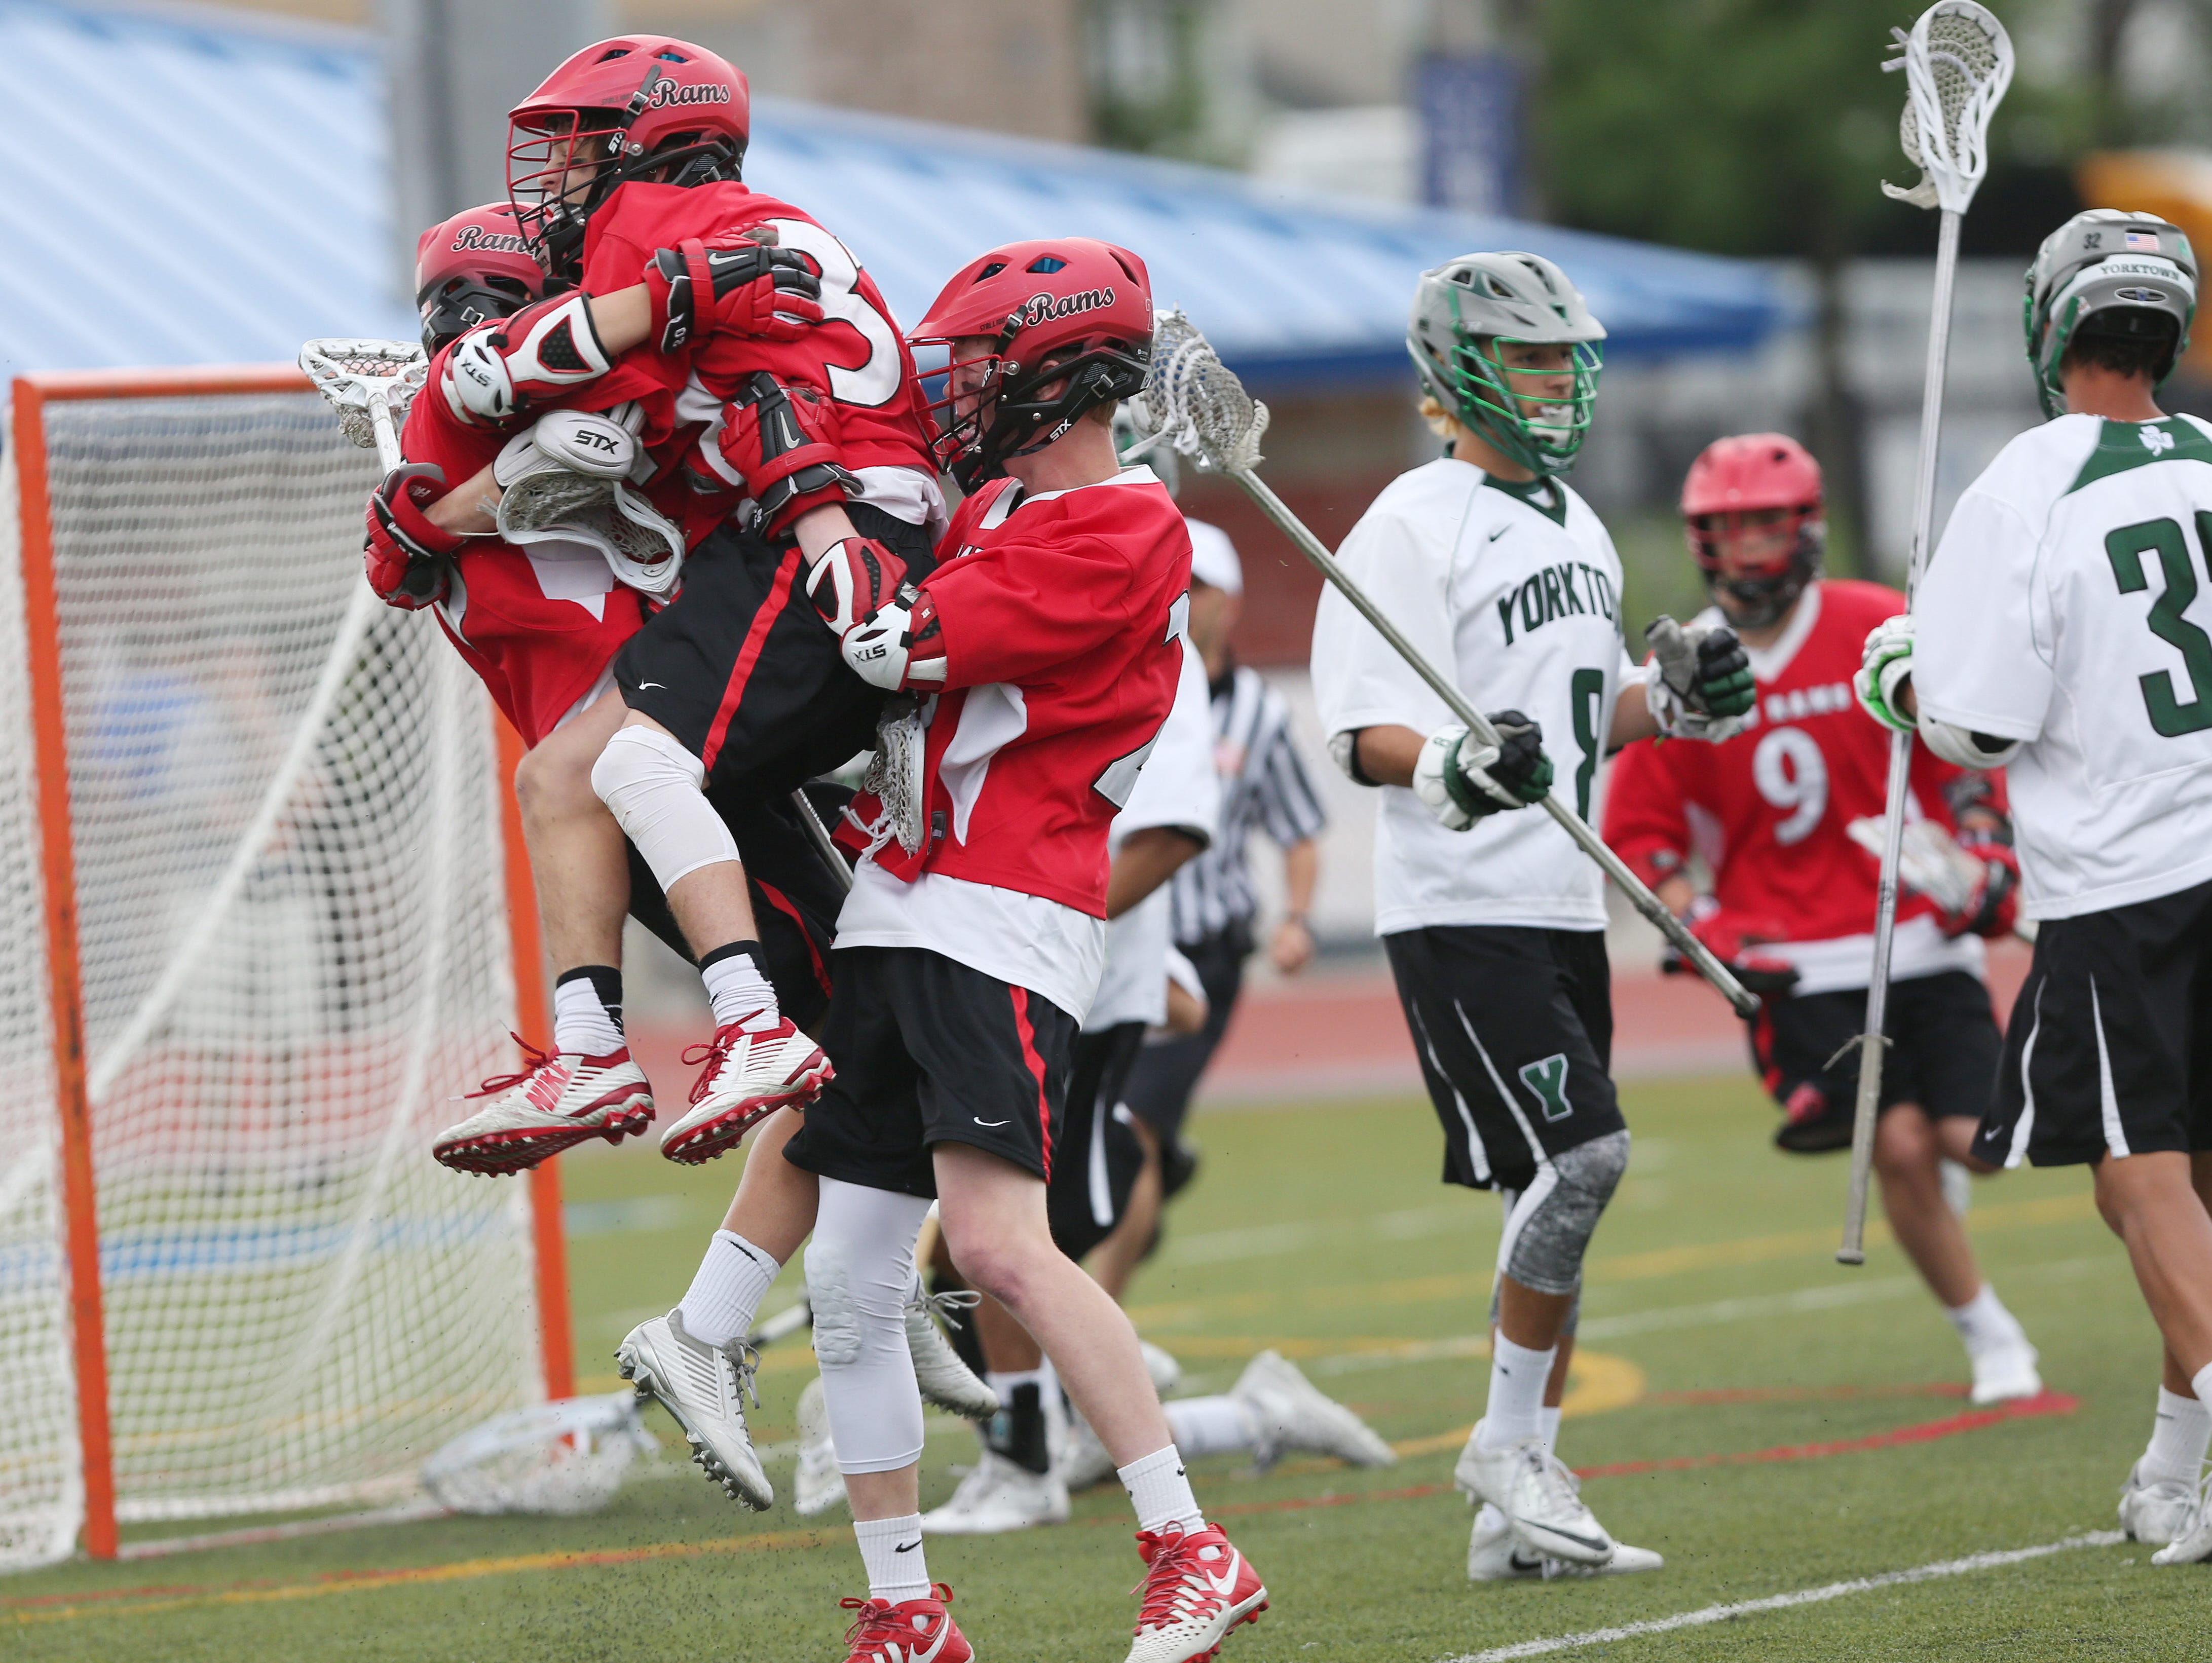 Jamesville-Dewitt players celebrate their first goal, just seconds into the game against Yorktown, during the NYSPHSAA Class B championship lacrosse game at Middletown High School June 11, 2016. Jamesville-Dewitt won the game 9-6.